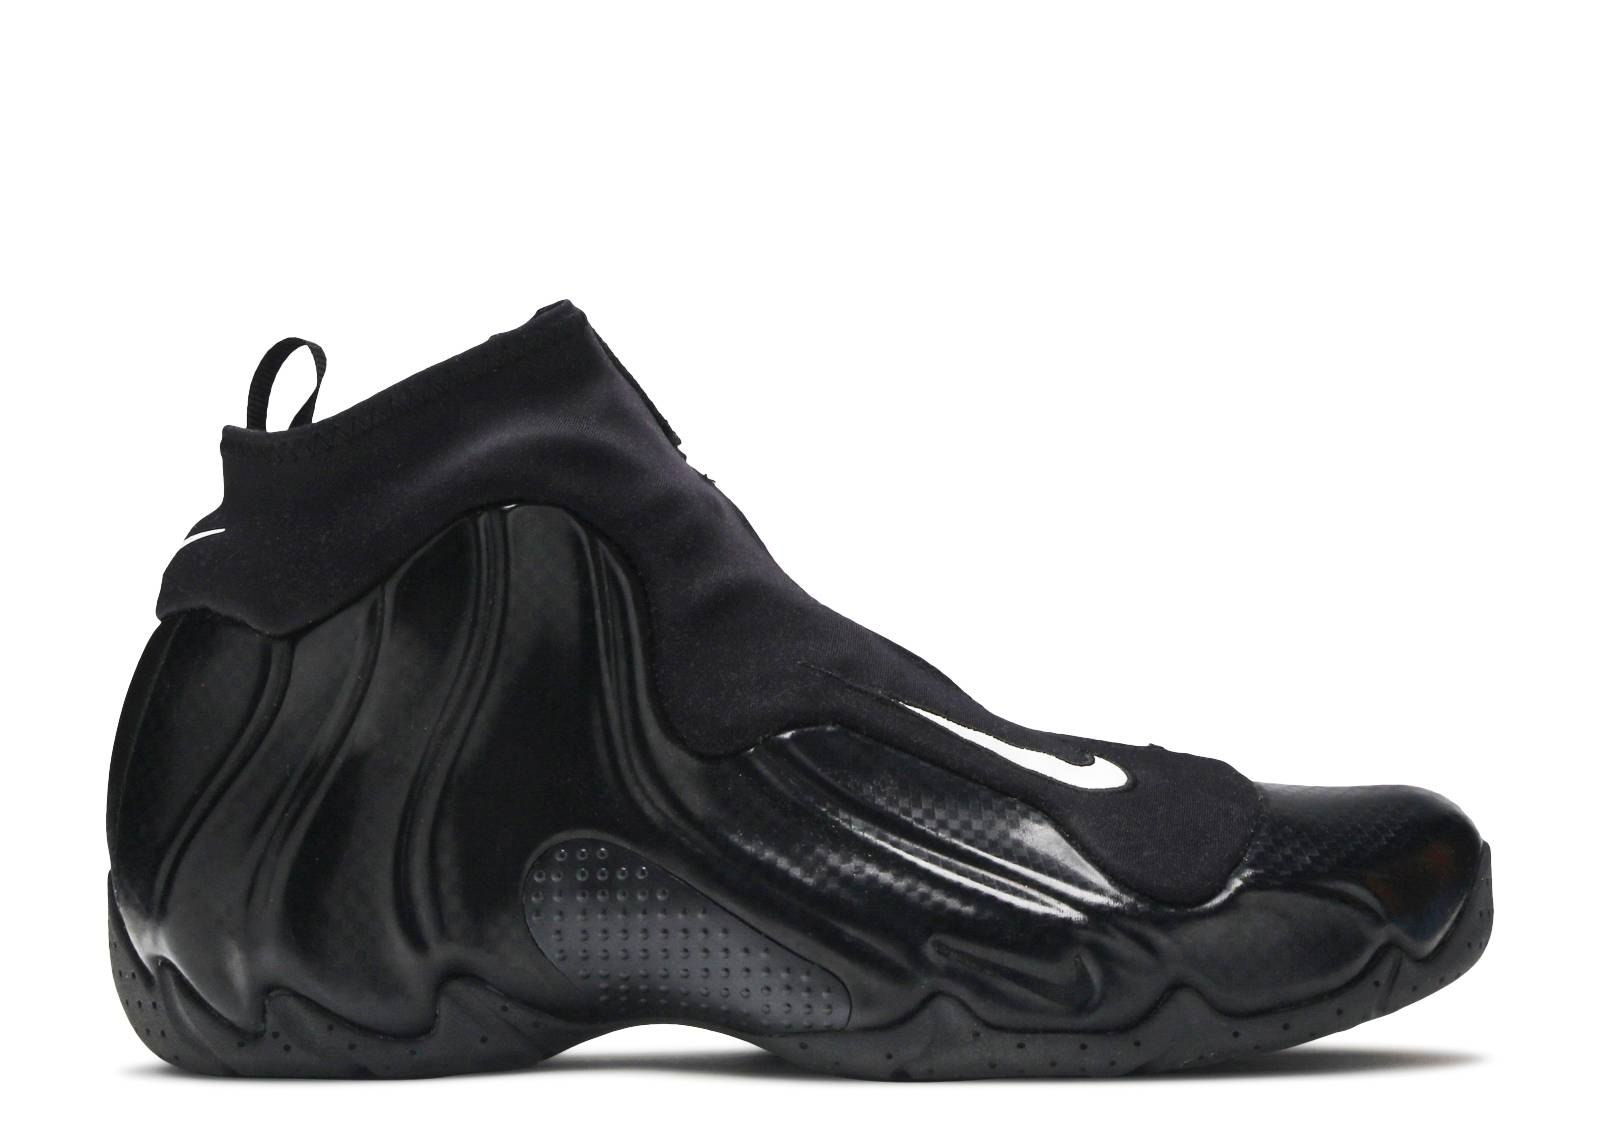 8031cee6f27 Air Flightposite 2014